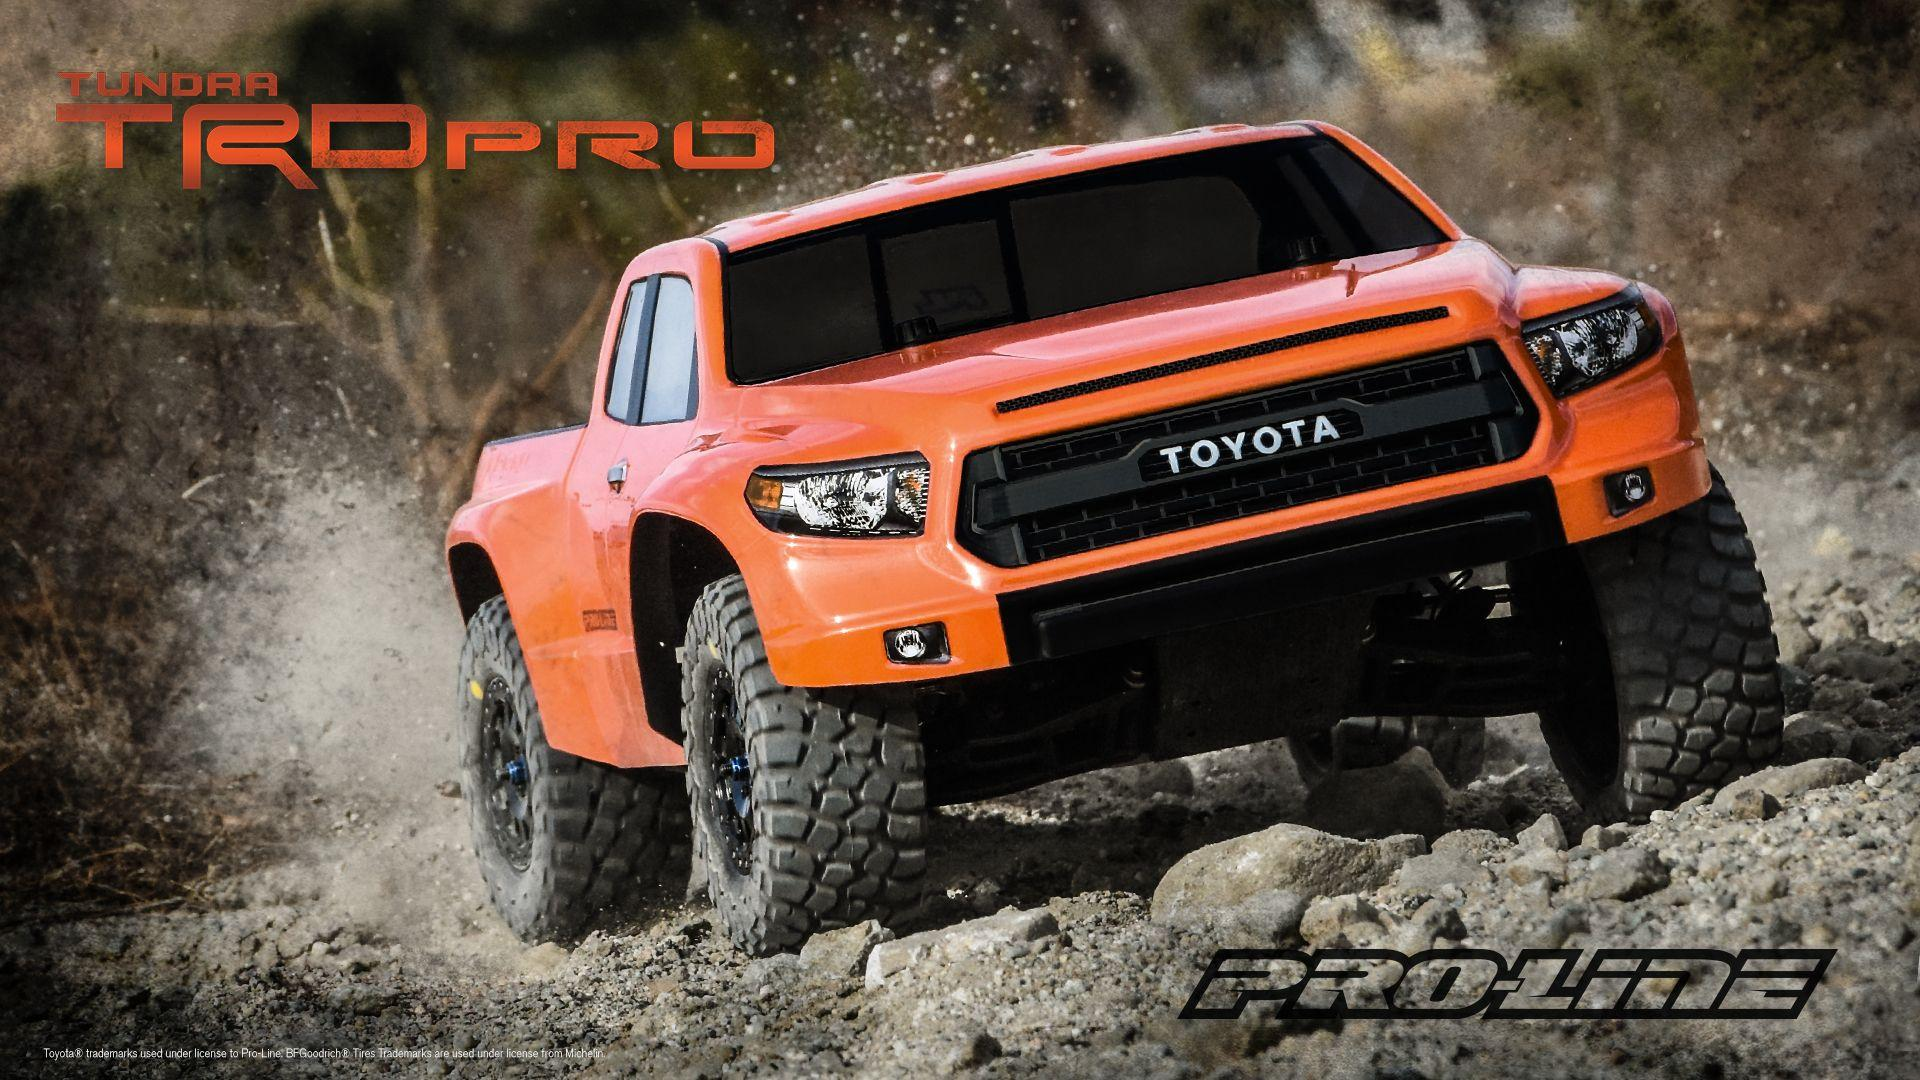 Pro-Line Toyota Tundra True Scale Wallpaper – Download Now! | Pro ...